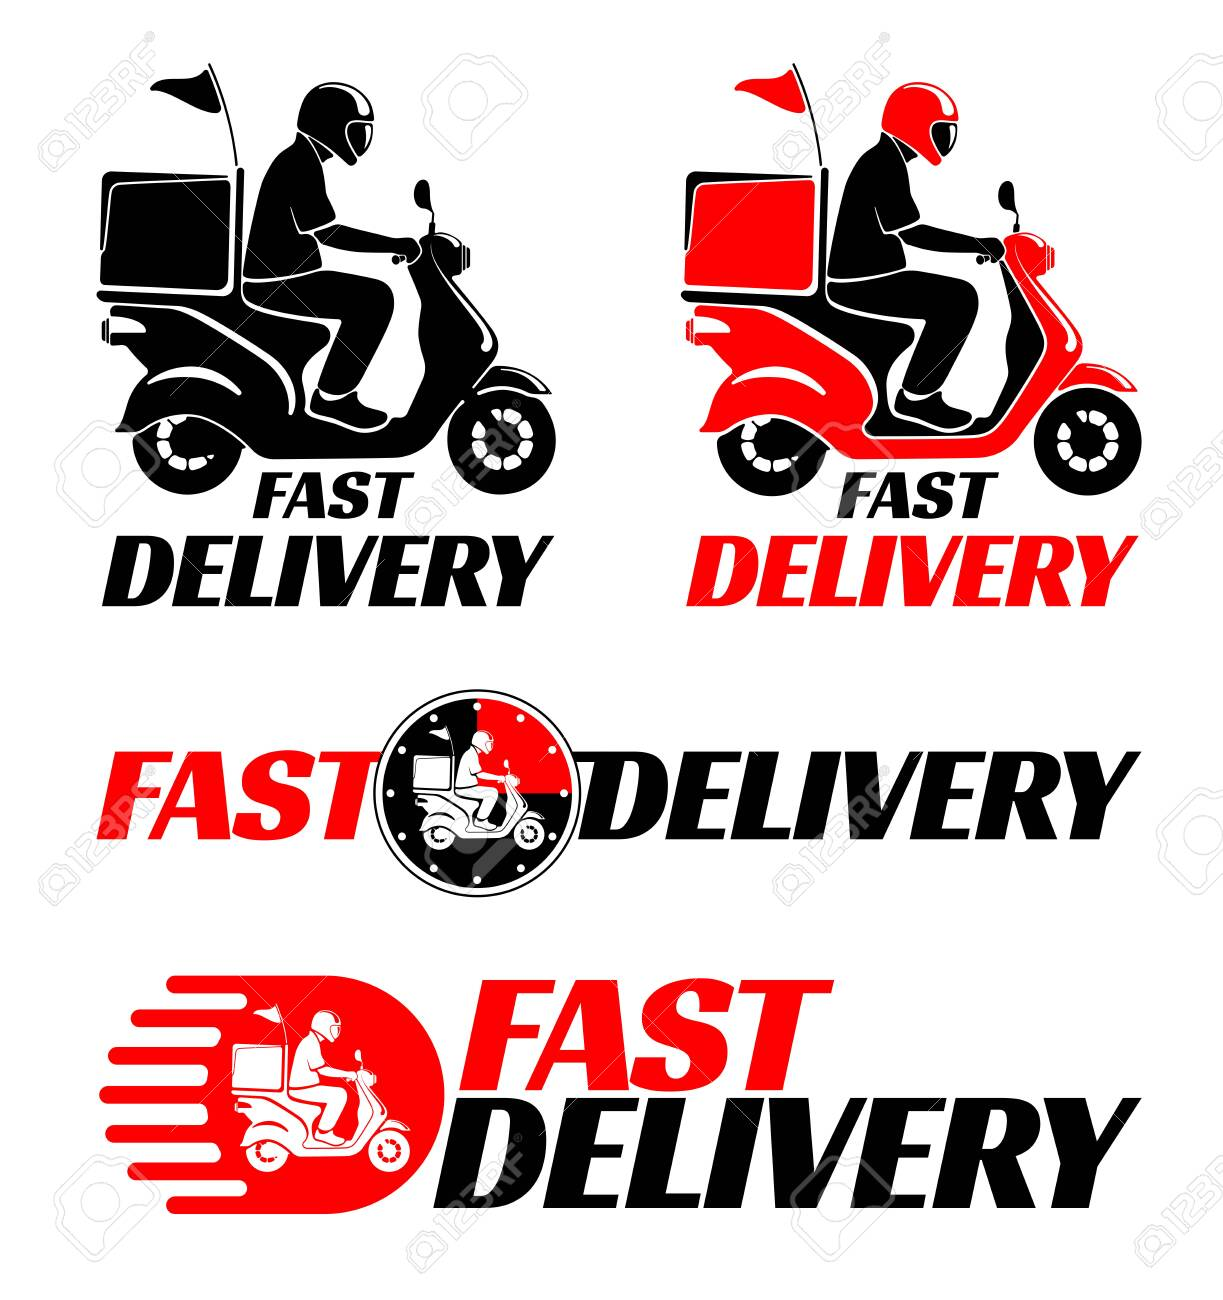 Logotypes design set for fast delivery of food or parcel by scooter. Vector illustration. - 147884086